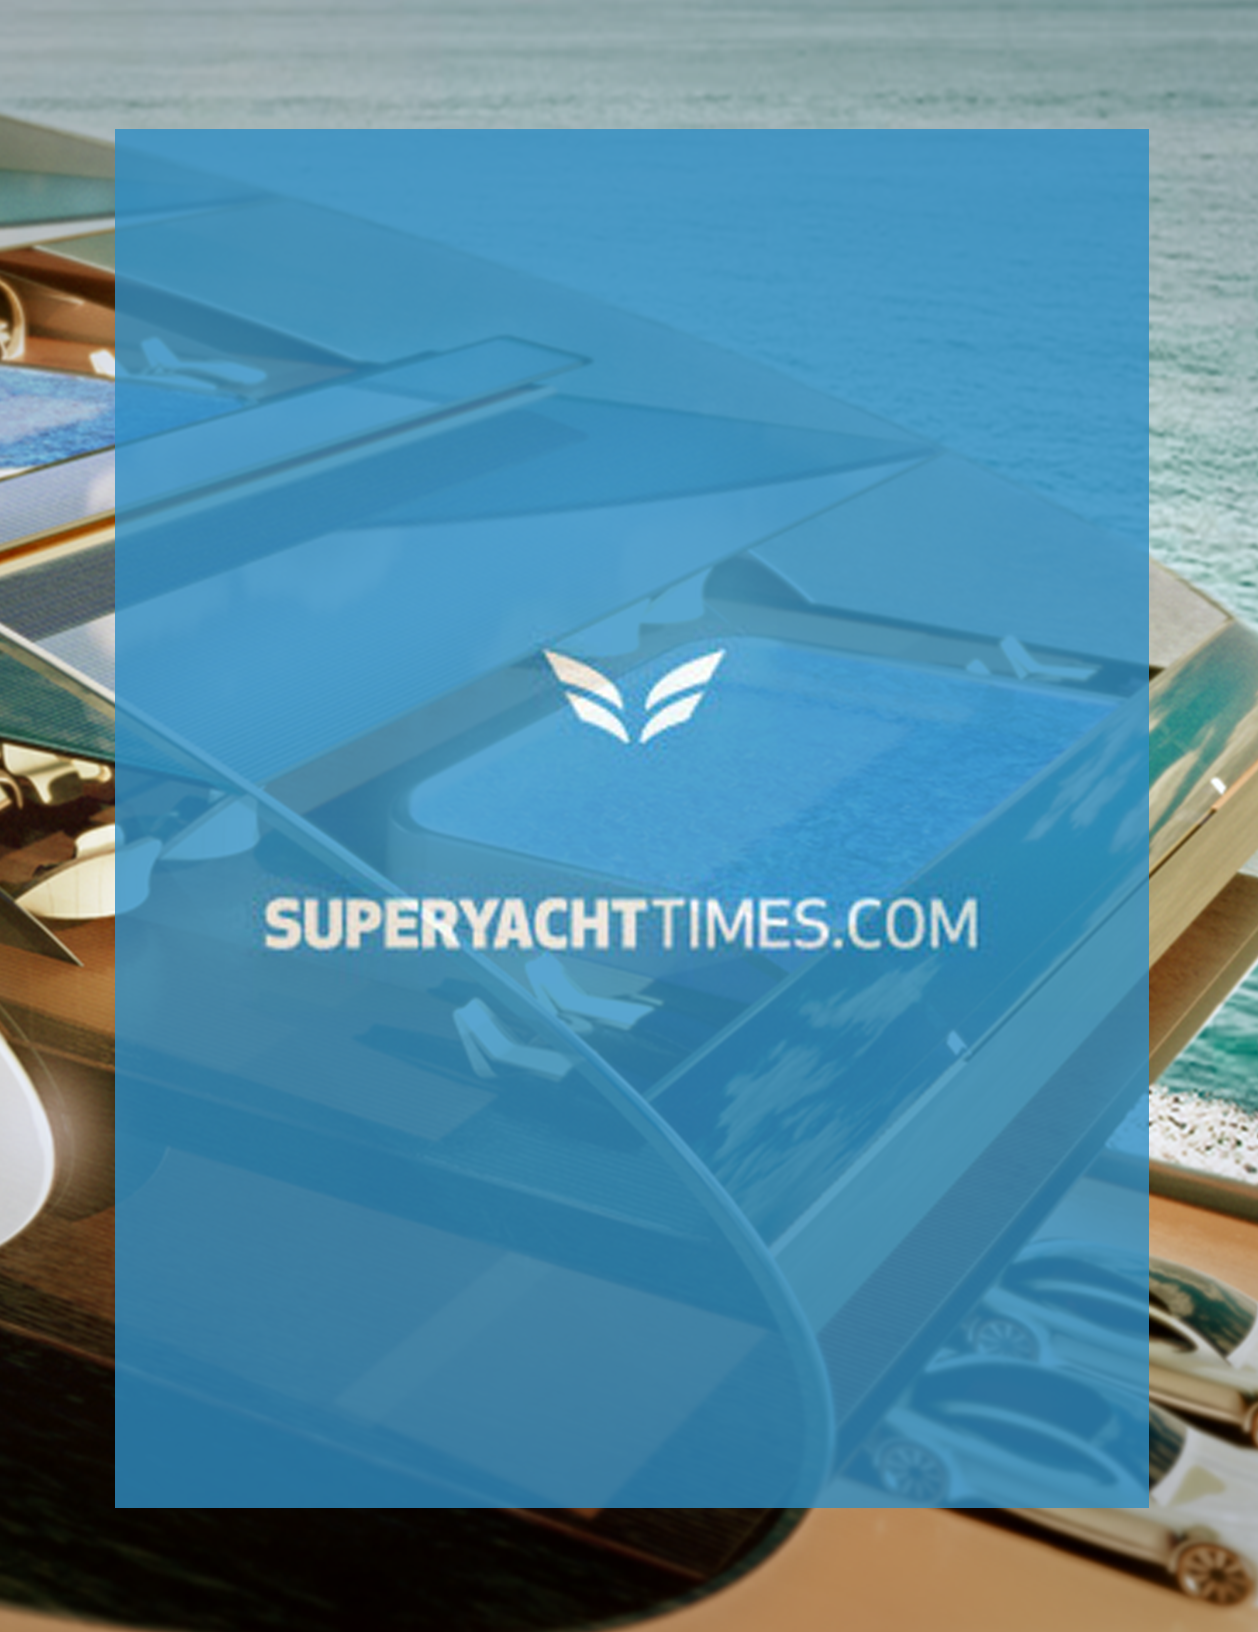 TRIO OF NEW SOLAR HYBRID MULTI-HULL SUPERYACHTS  Eramotive has presented a new trio of new solar hybrid multi-hull superyachts, the Iris Series.  The series presents vessels of three different lengths; 45 meters over three decks, 75 meters over five decks, and 125 meters over seven decks....